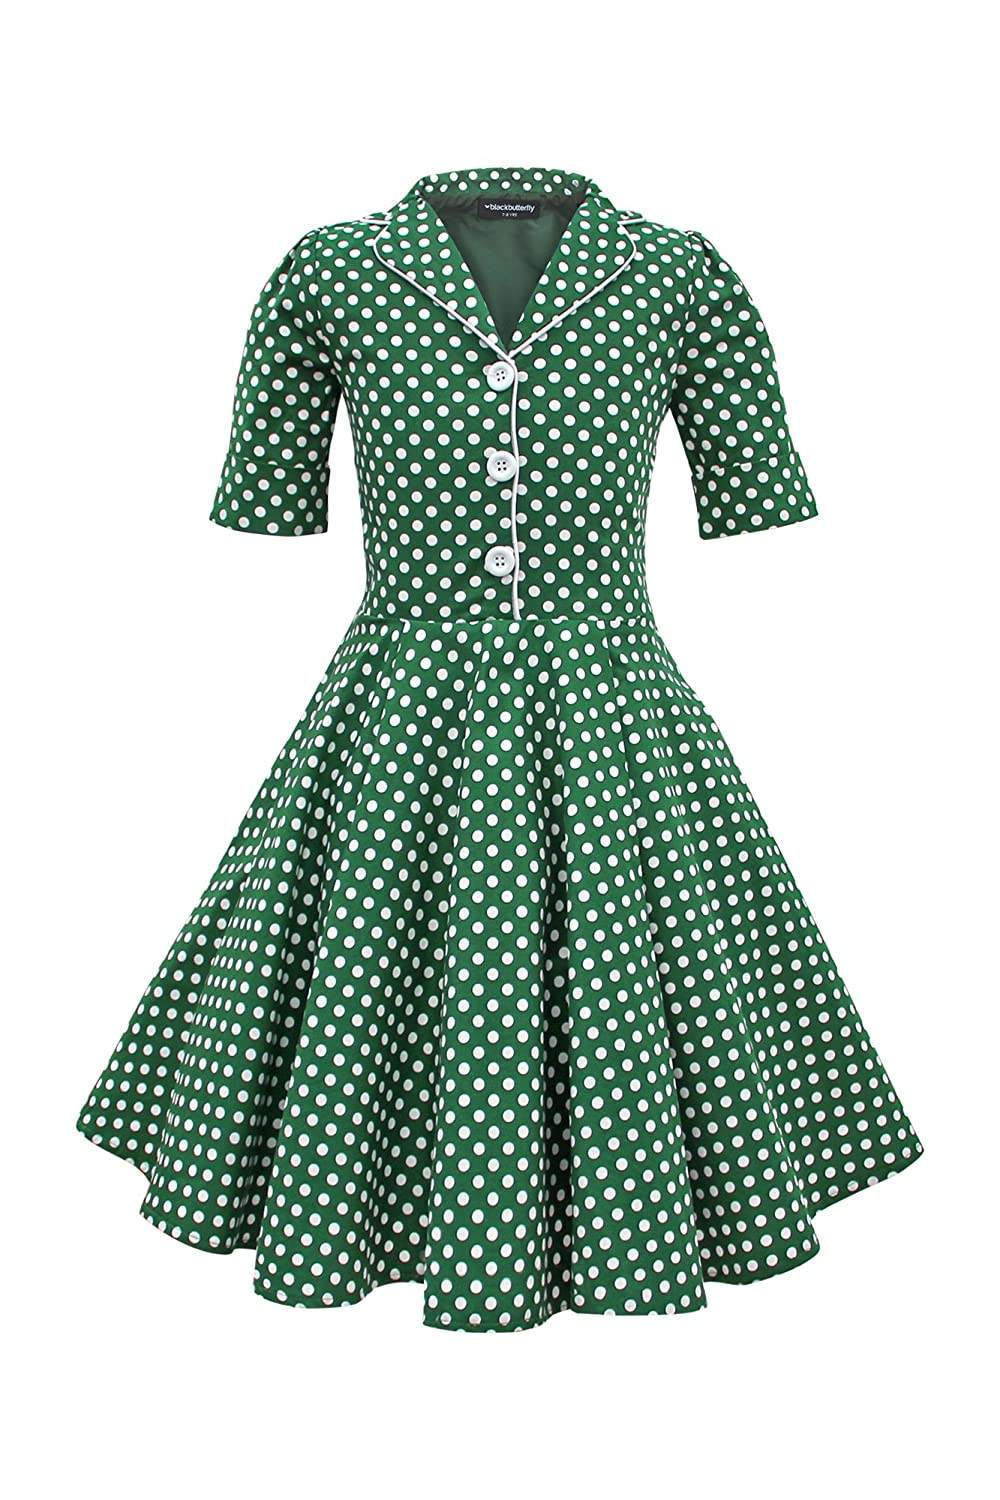 Kids 1950s Clothing & Costumes: Girls, Boys, Toddlers Black Butterfly Clothing BlackButterfly Kids Sabrina Vintage Polka Dot 50s Girls Dress $33.99 AT vintagedancer.com